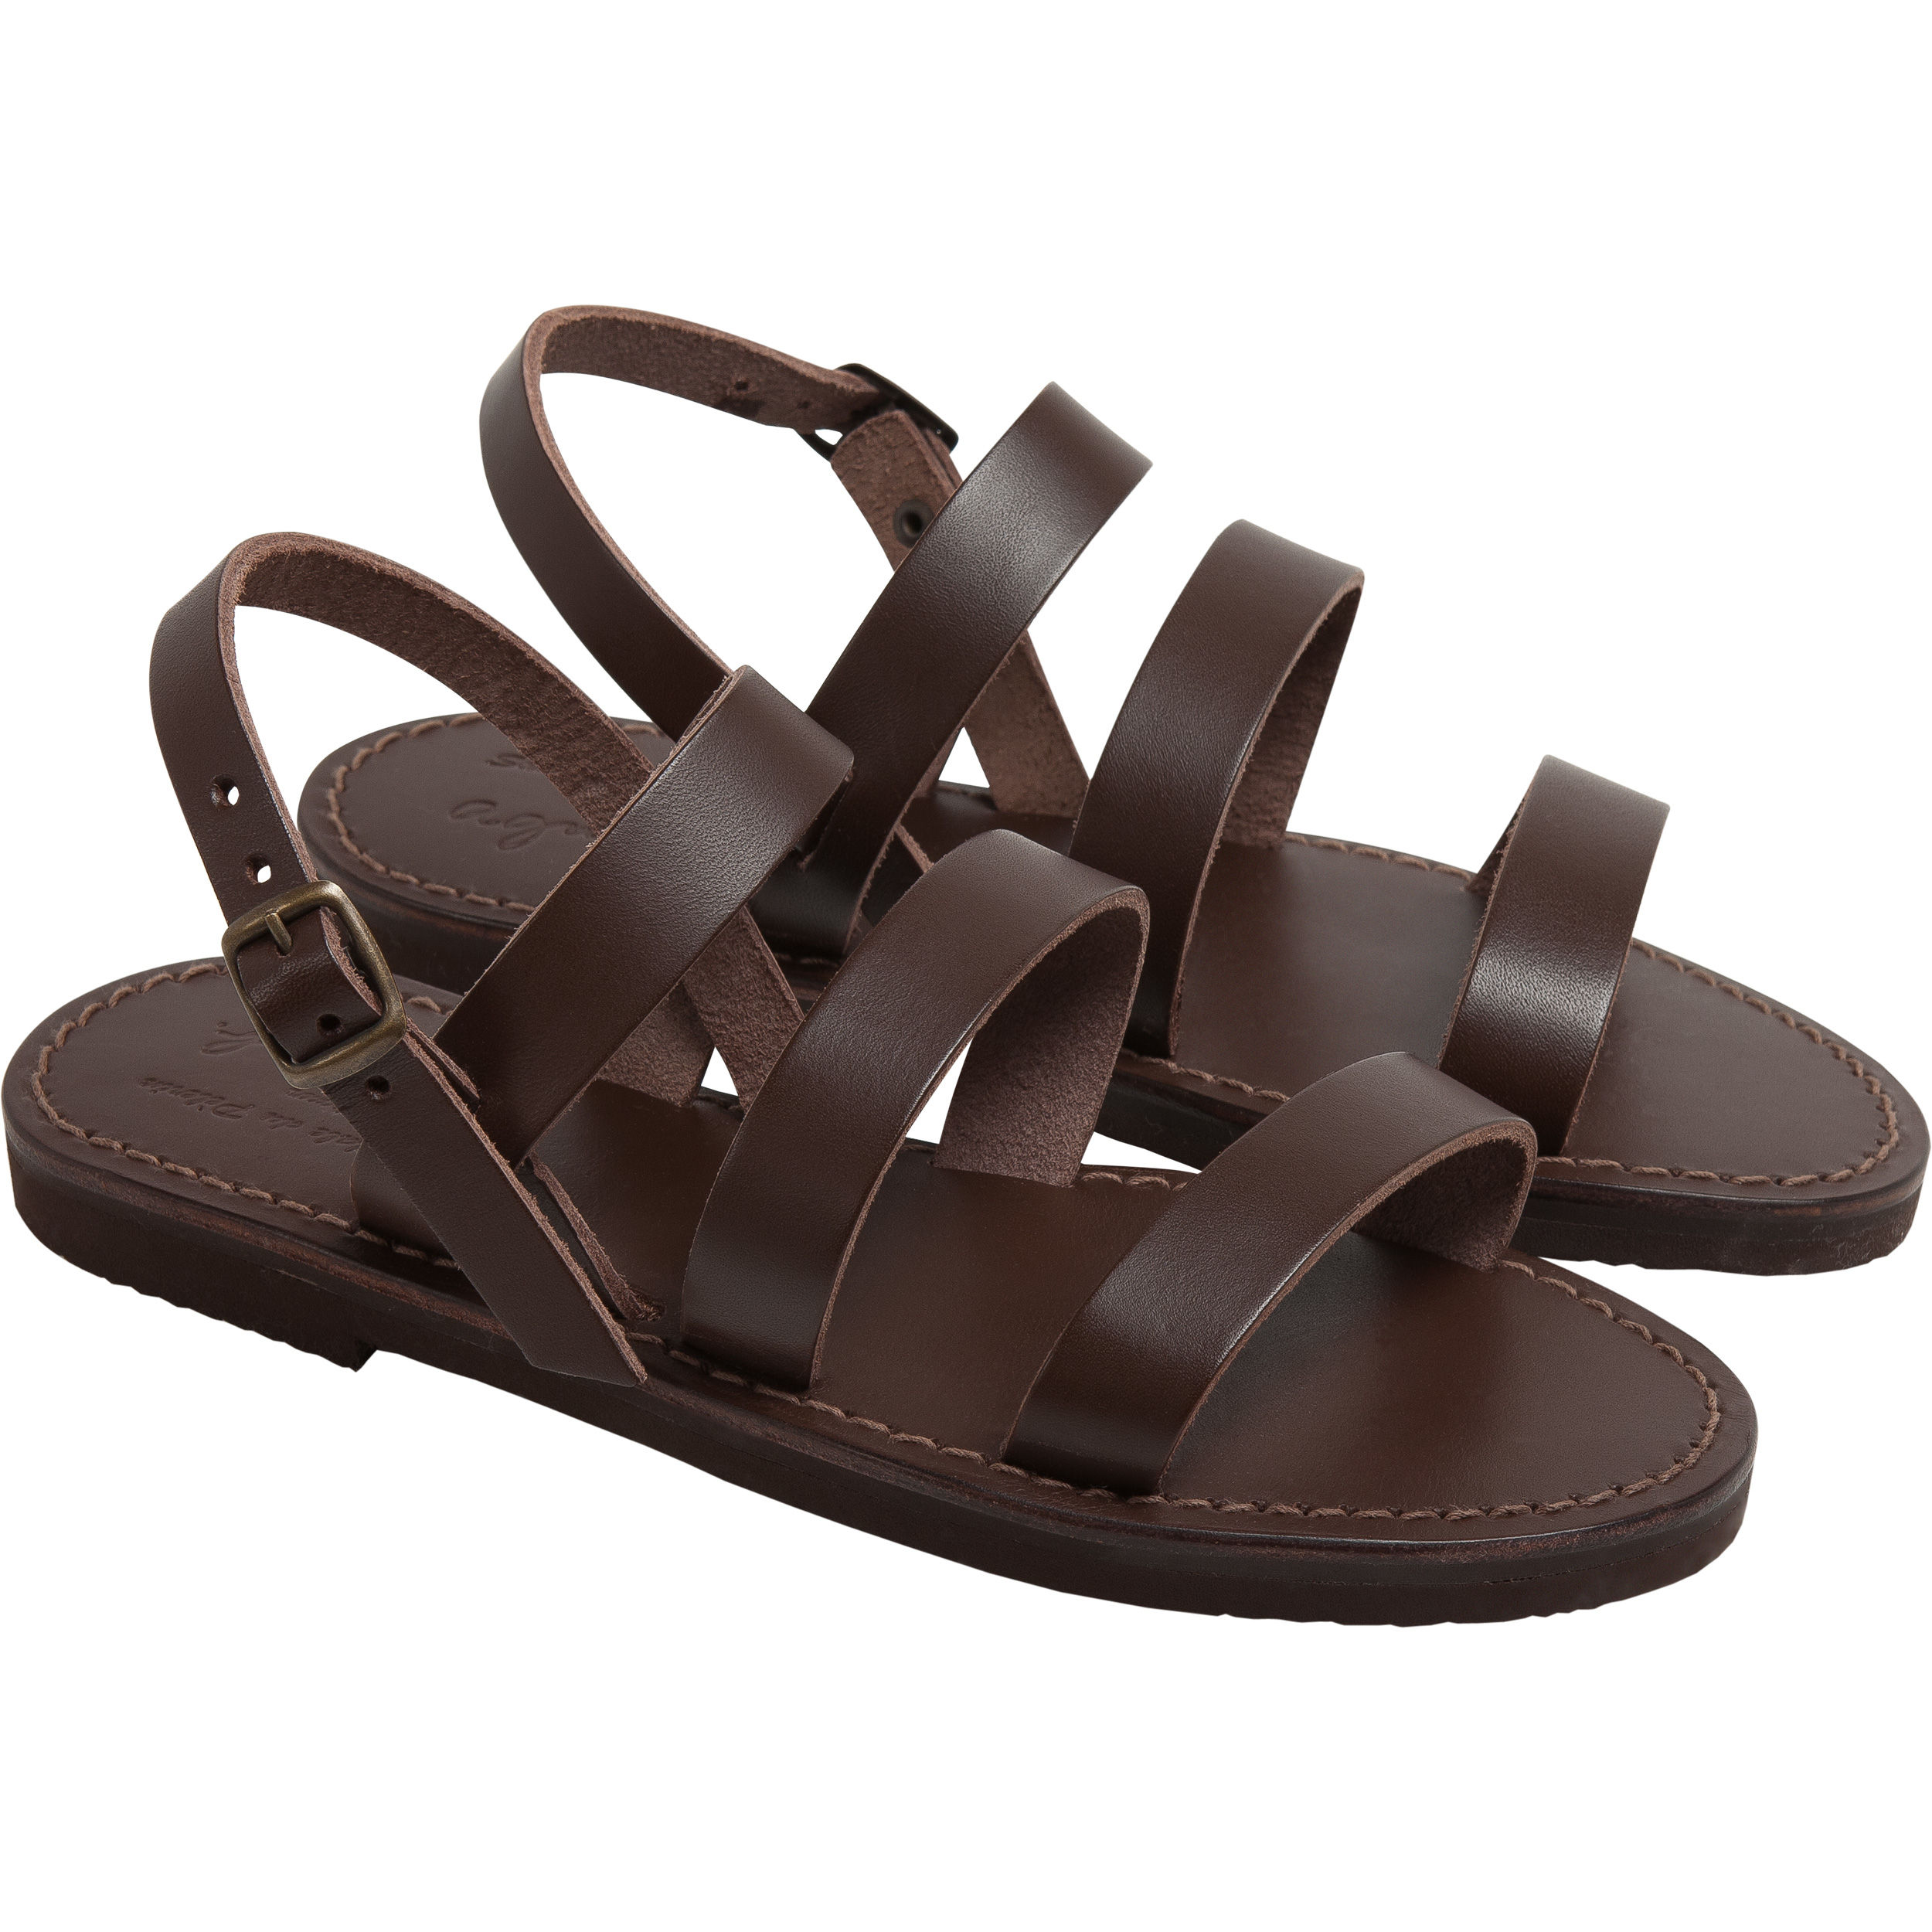 Agnès b. Brown Gladiator Sandals in Brown